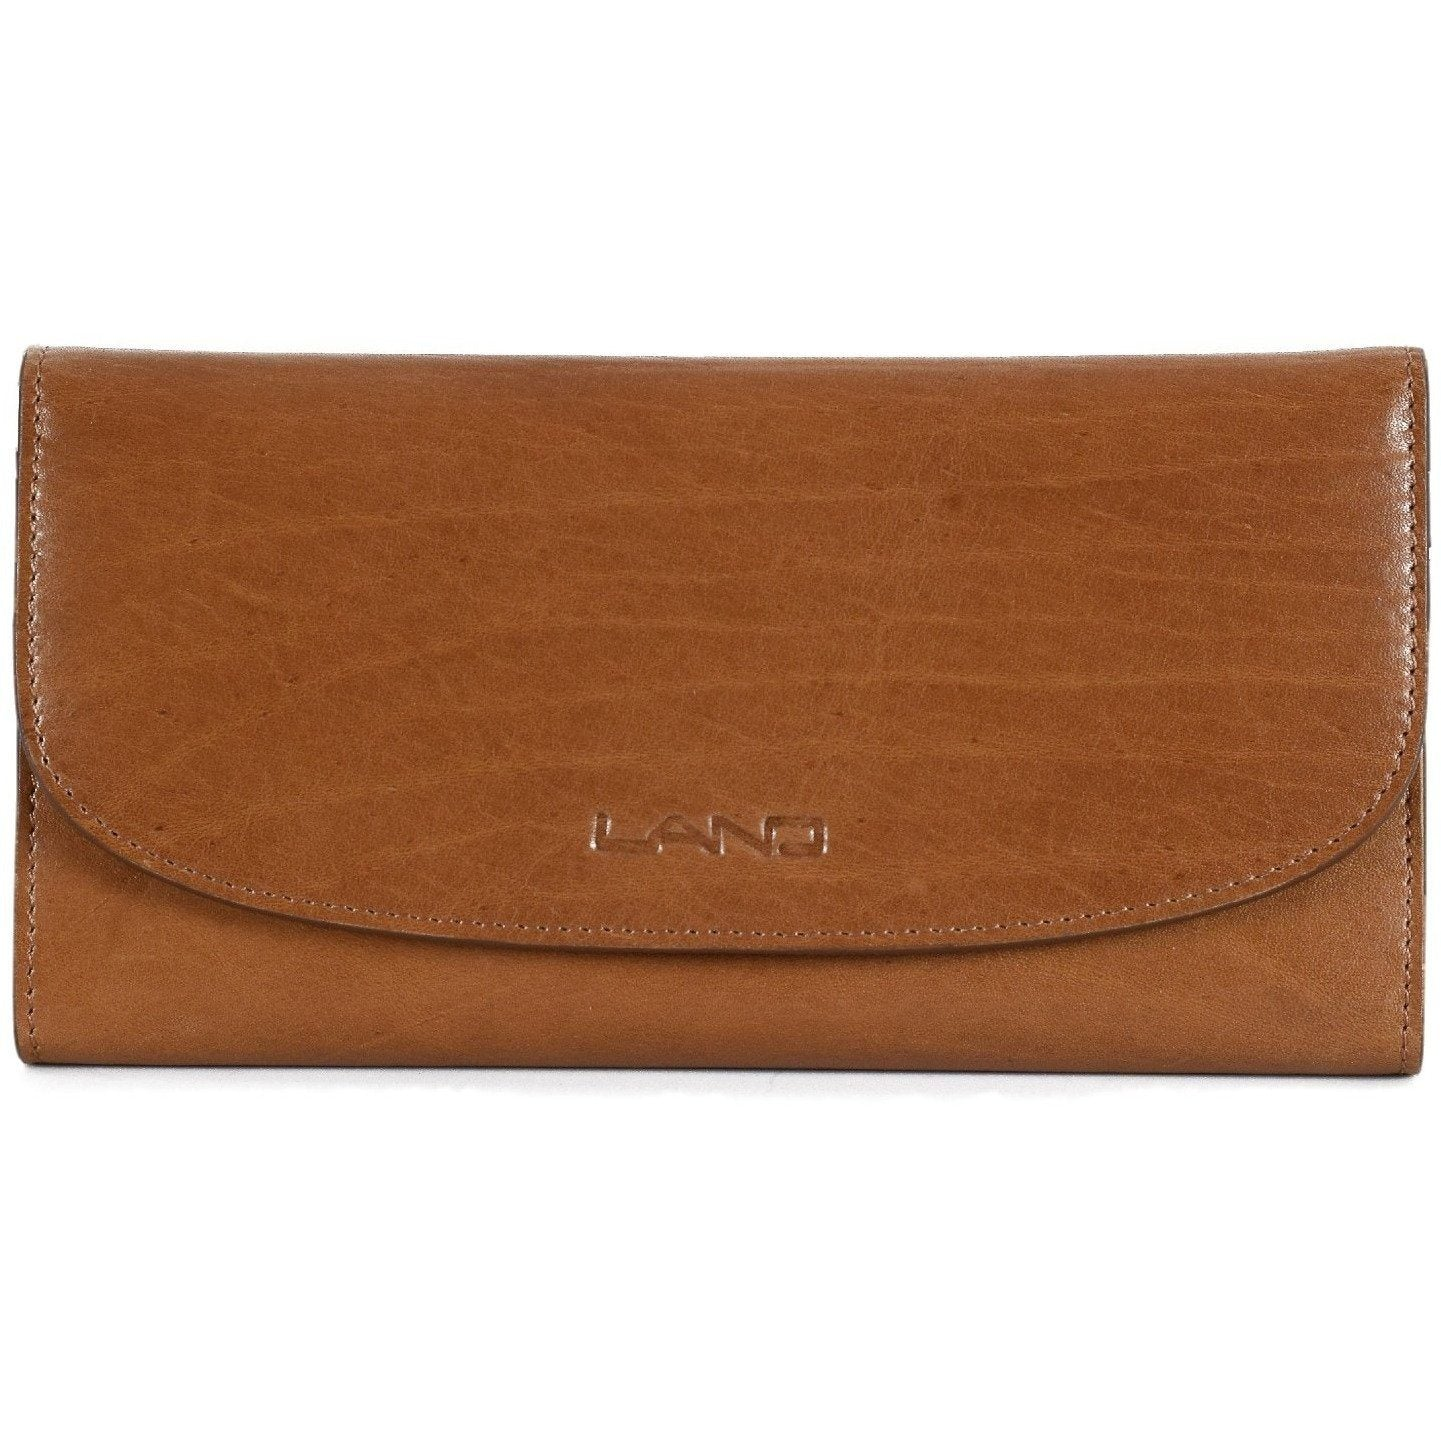 Limited Ladies Wallet, Wallet | LAND Leather